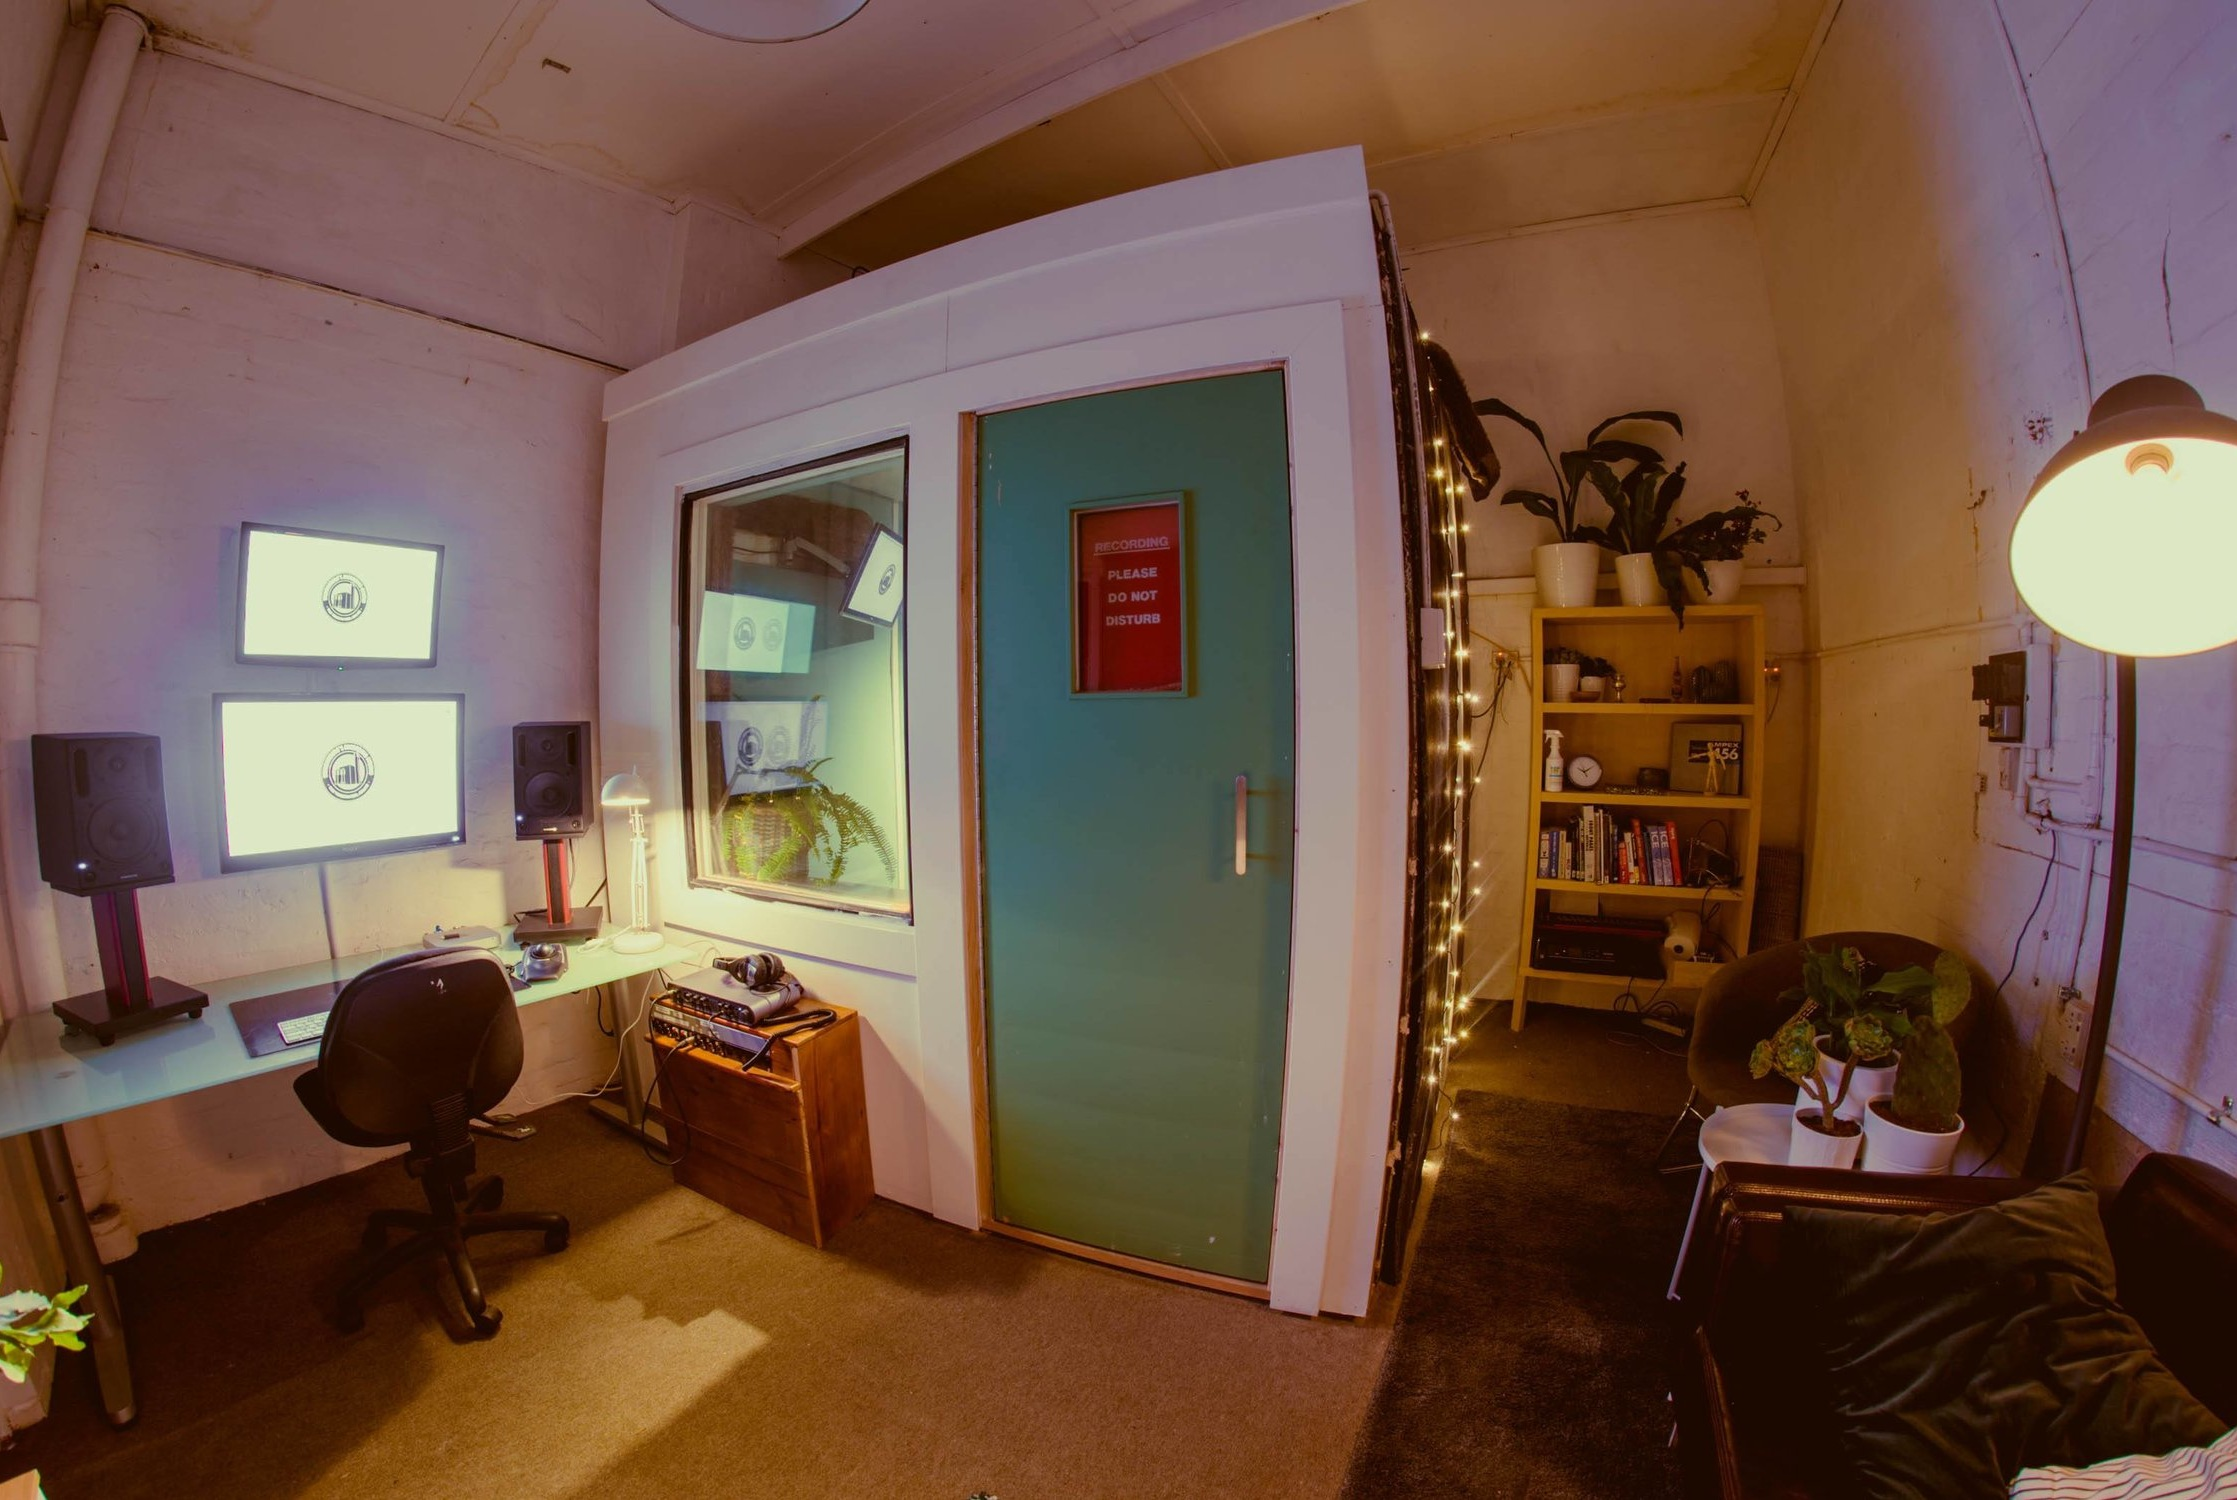 Rates - BYO Engineer Rates$85 for a 4 hour Session (Minimum).$150 for an 8 hour Session (More Time Available if Needed). $100 to hire Neumann U87 for session.If you need an engineer we charge $110 per hour (includes equipment hire).